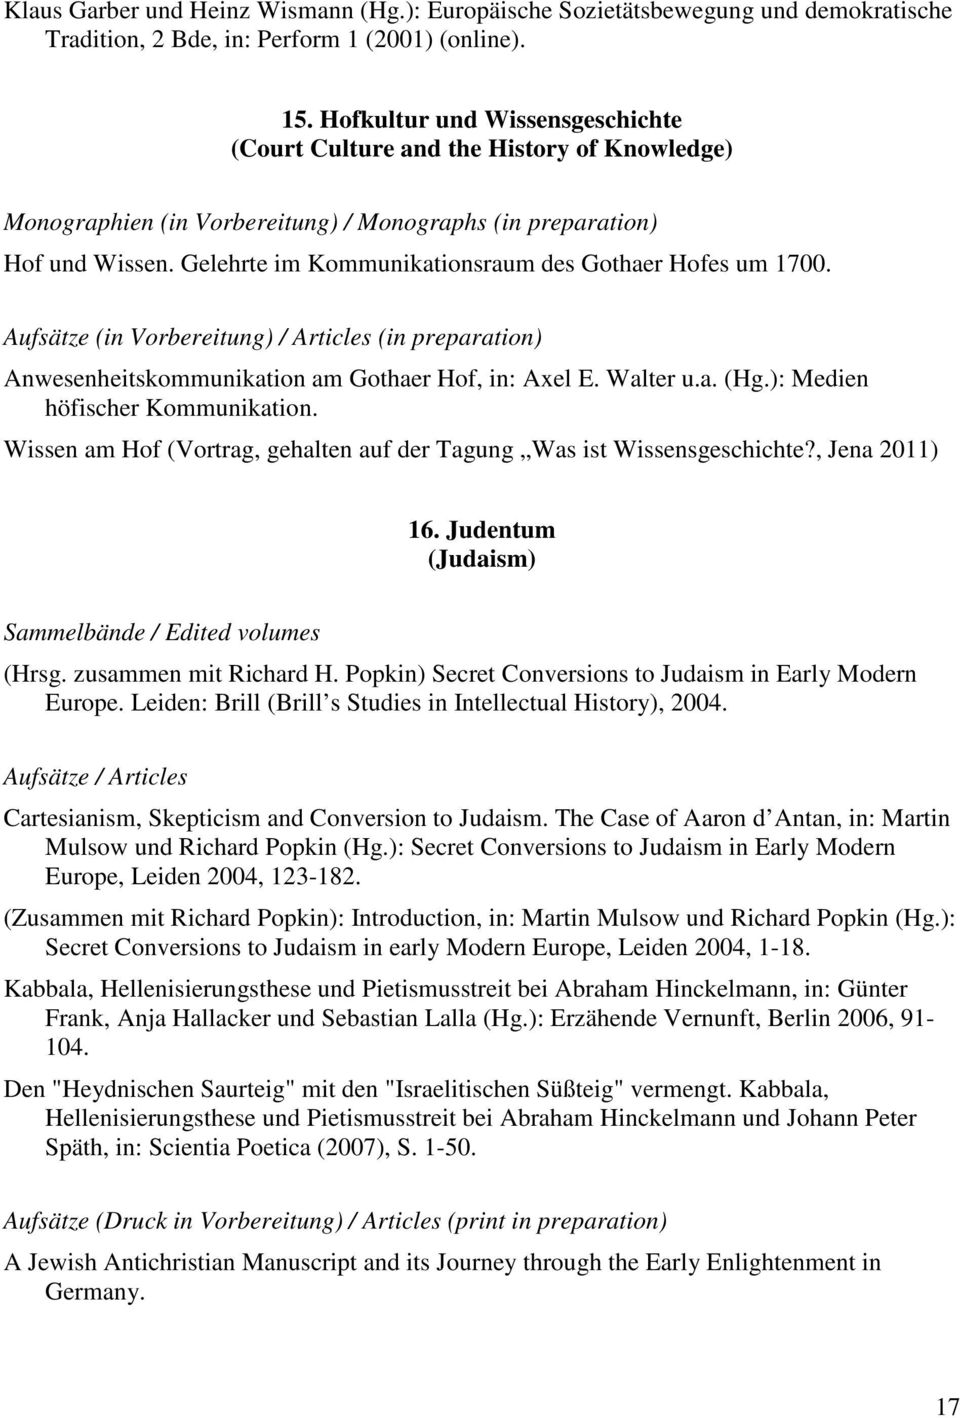 Gelehrte im Kommunikationsraum des Gothaer Hofes um 1700. Aufsätze (in Vorbereitung) / Articles (in preparation) Anwesenheitskommunikation am Gothaer Hof, in: Axel E. Walter u.a. (Hg.